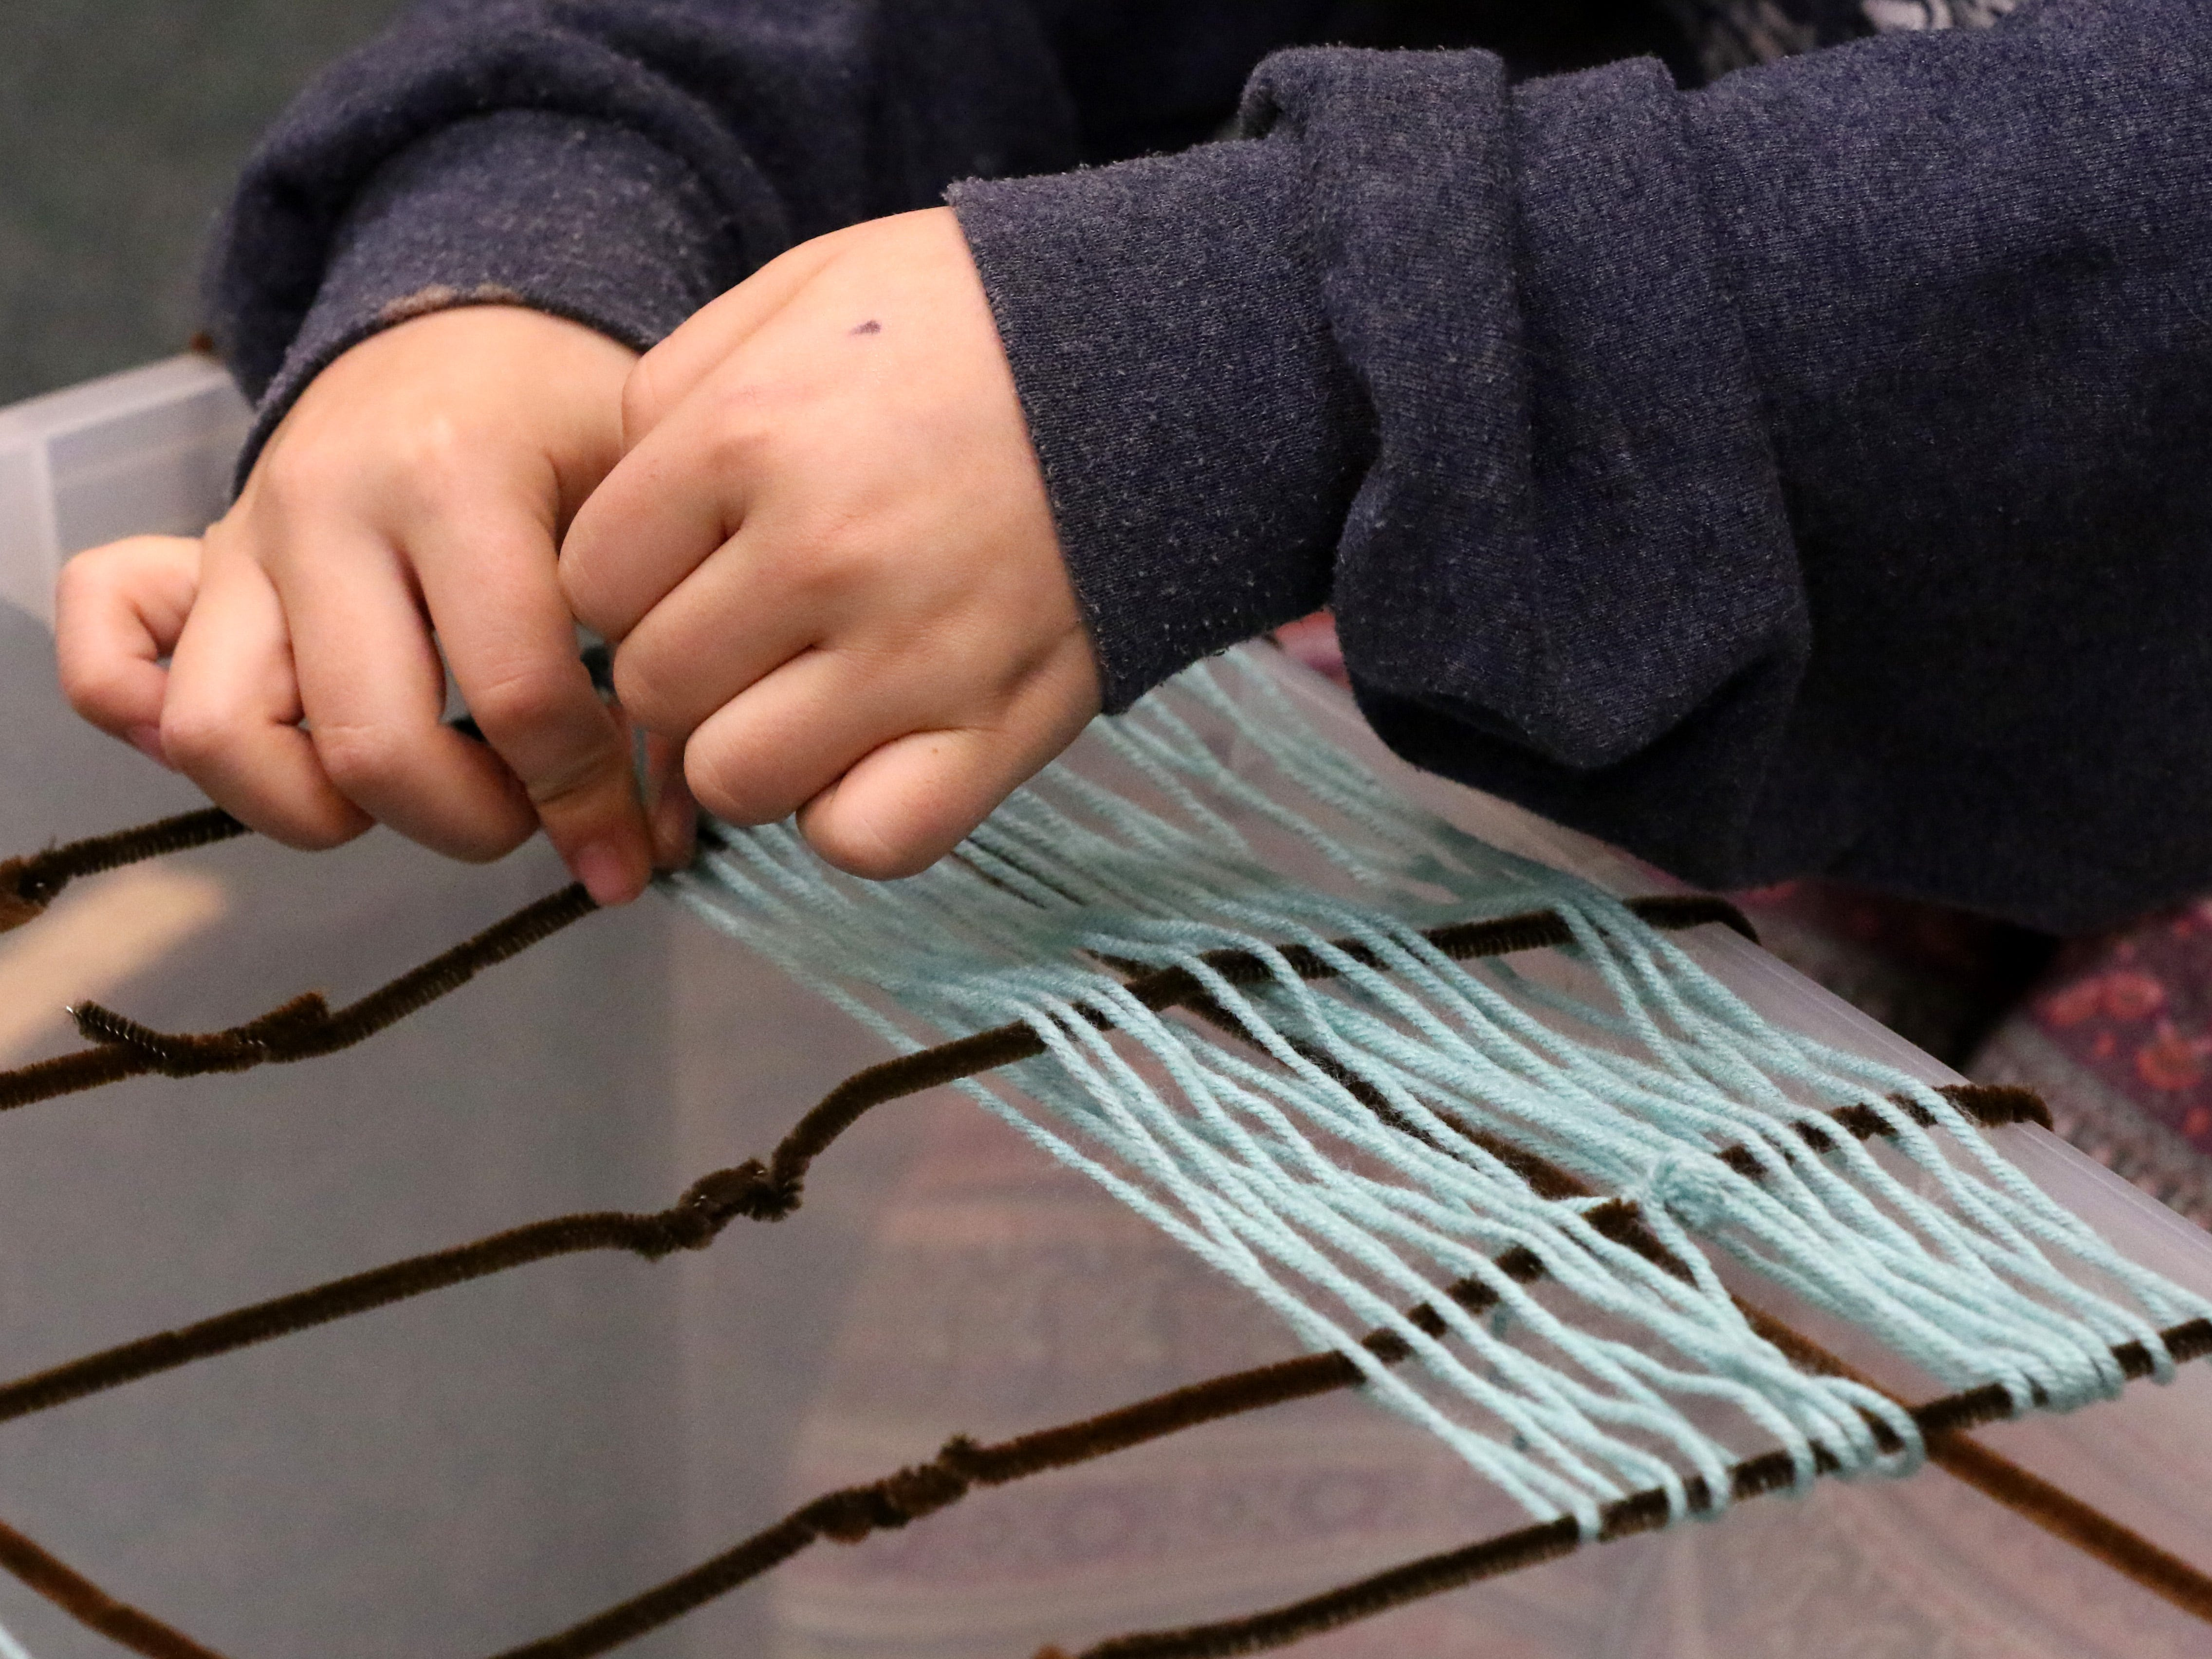 Adeline Young weaves a yarn deck between pipe cleaner supports for a bridge to span a tub during a STEAM - science, technology, engineering, art and math - program at the Menomonee Falls Library on Nov. 14.